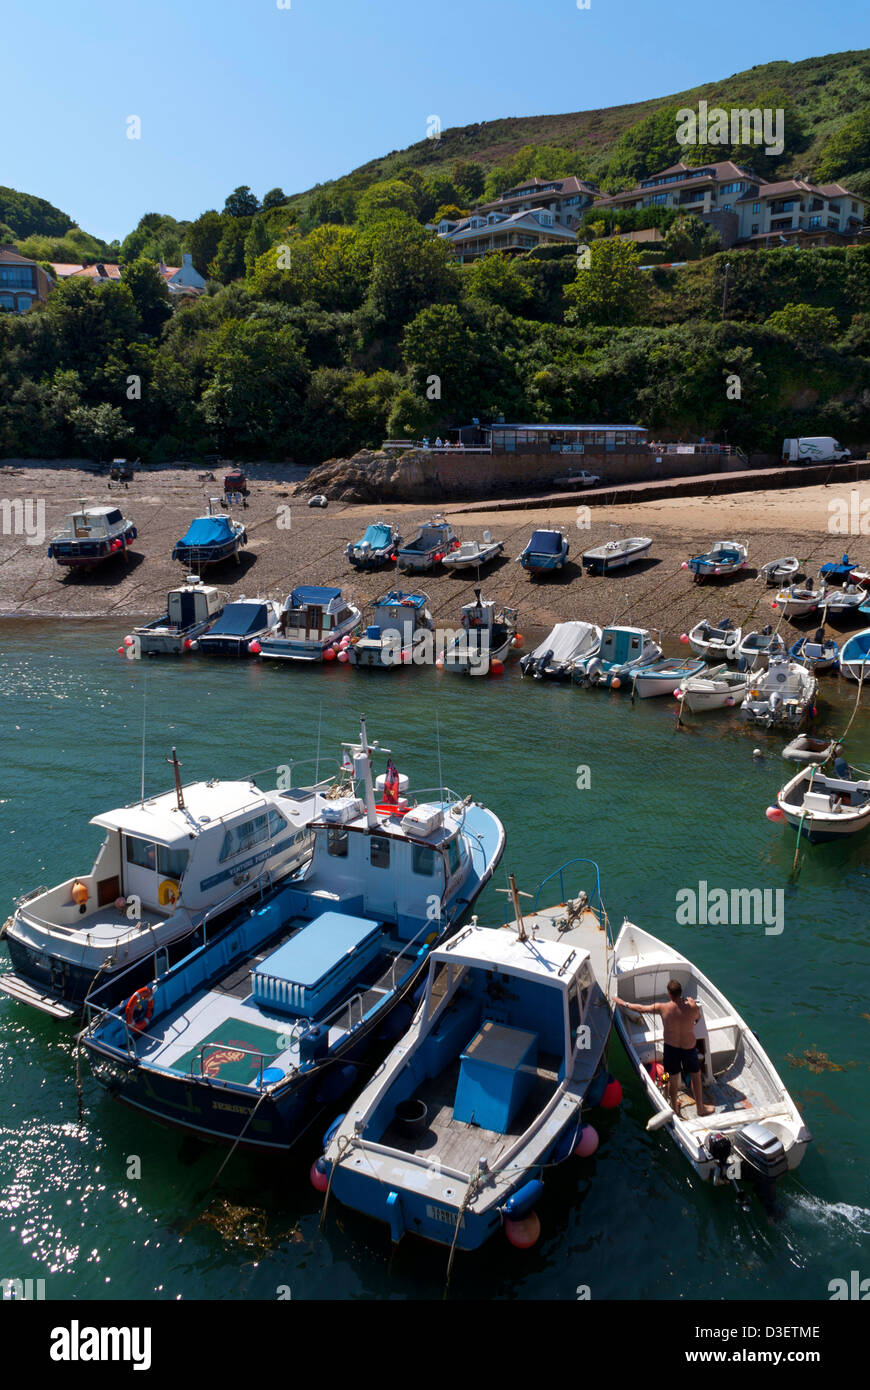 Boats in the harbour at Bonne Nuit, Jersey, Channel Islands, UK - Stock Image